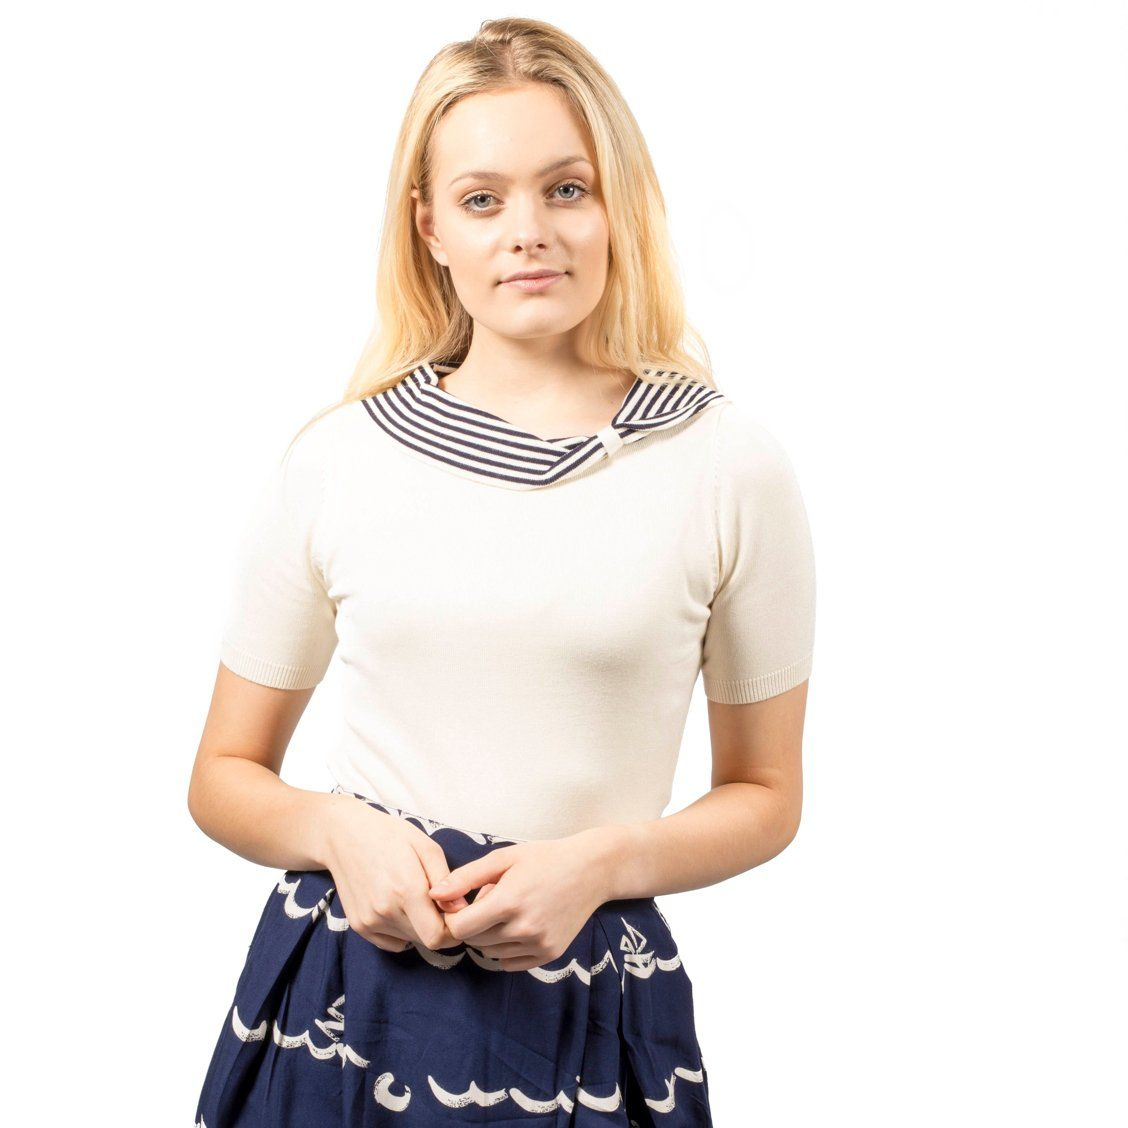 Fever Designs Annette Knitted Top - BouChic